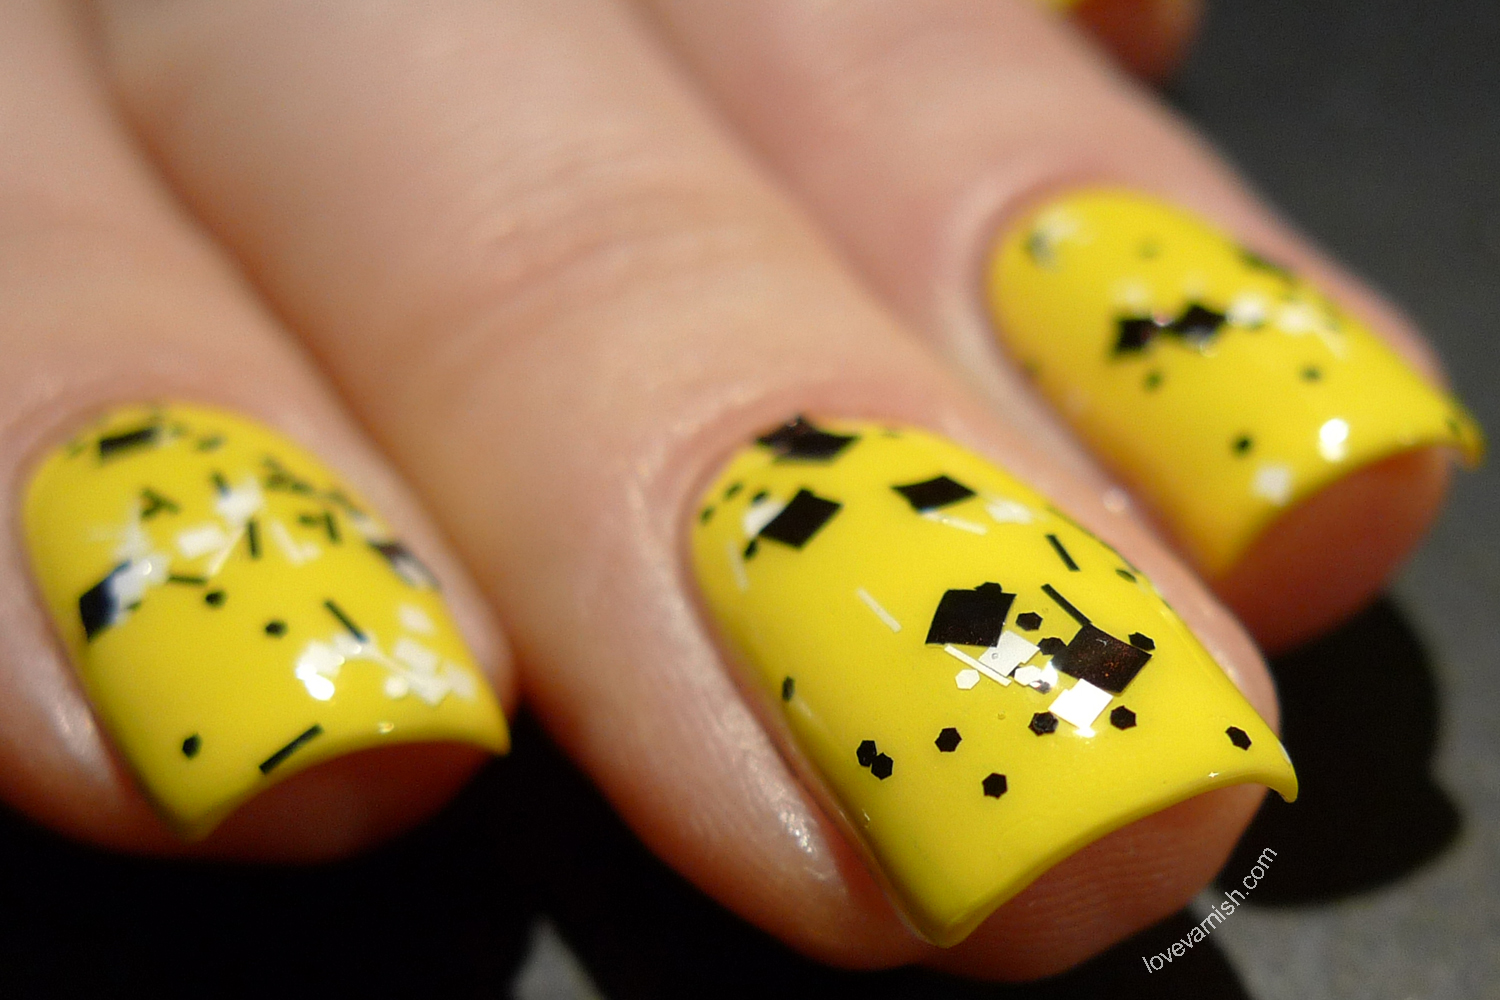 OPI Just Can't Cope-a-Cabana yellow creme and Dance Legend Geometric Topcoat black & white topper